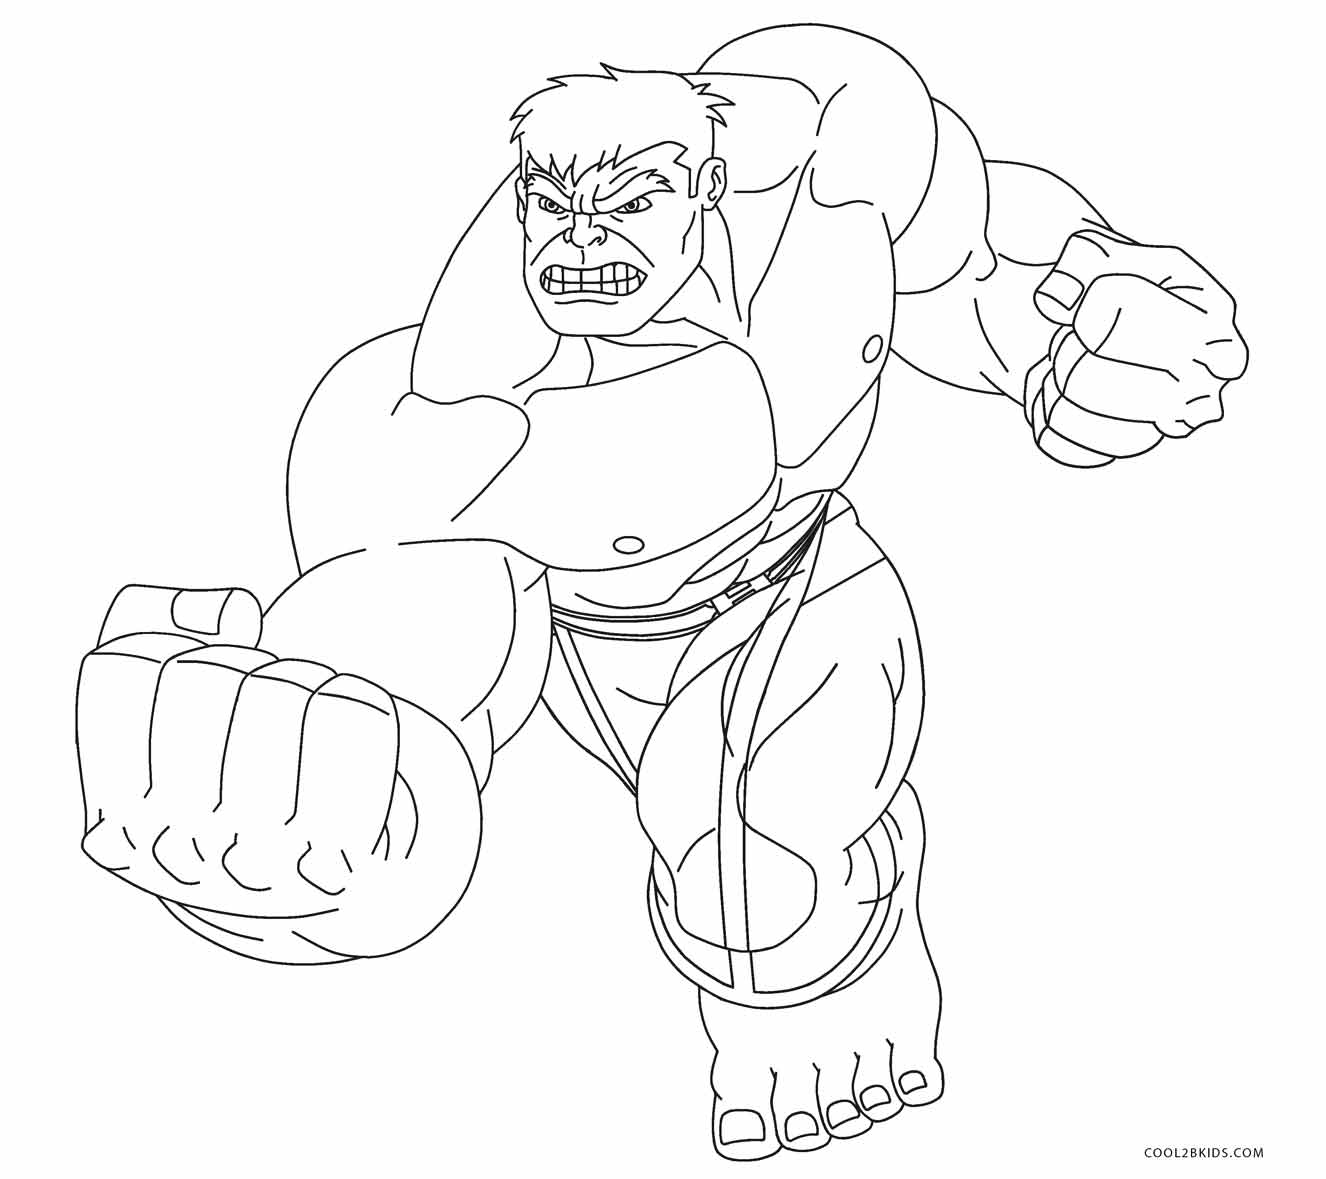 hulk for coloring hulk coloring pages download and print hulk coloring pages hulk for coloring